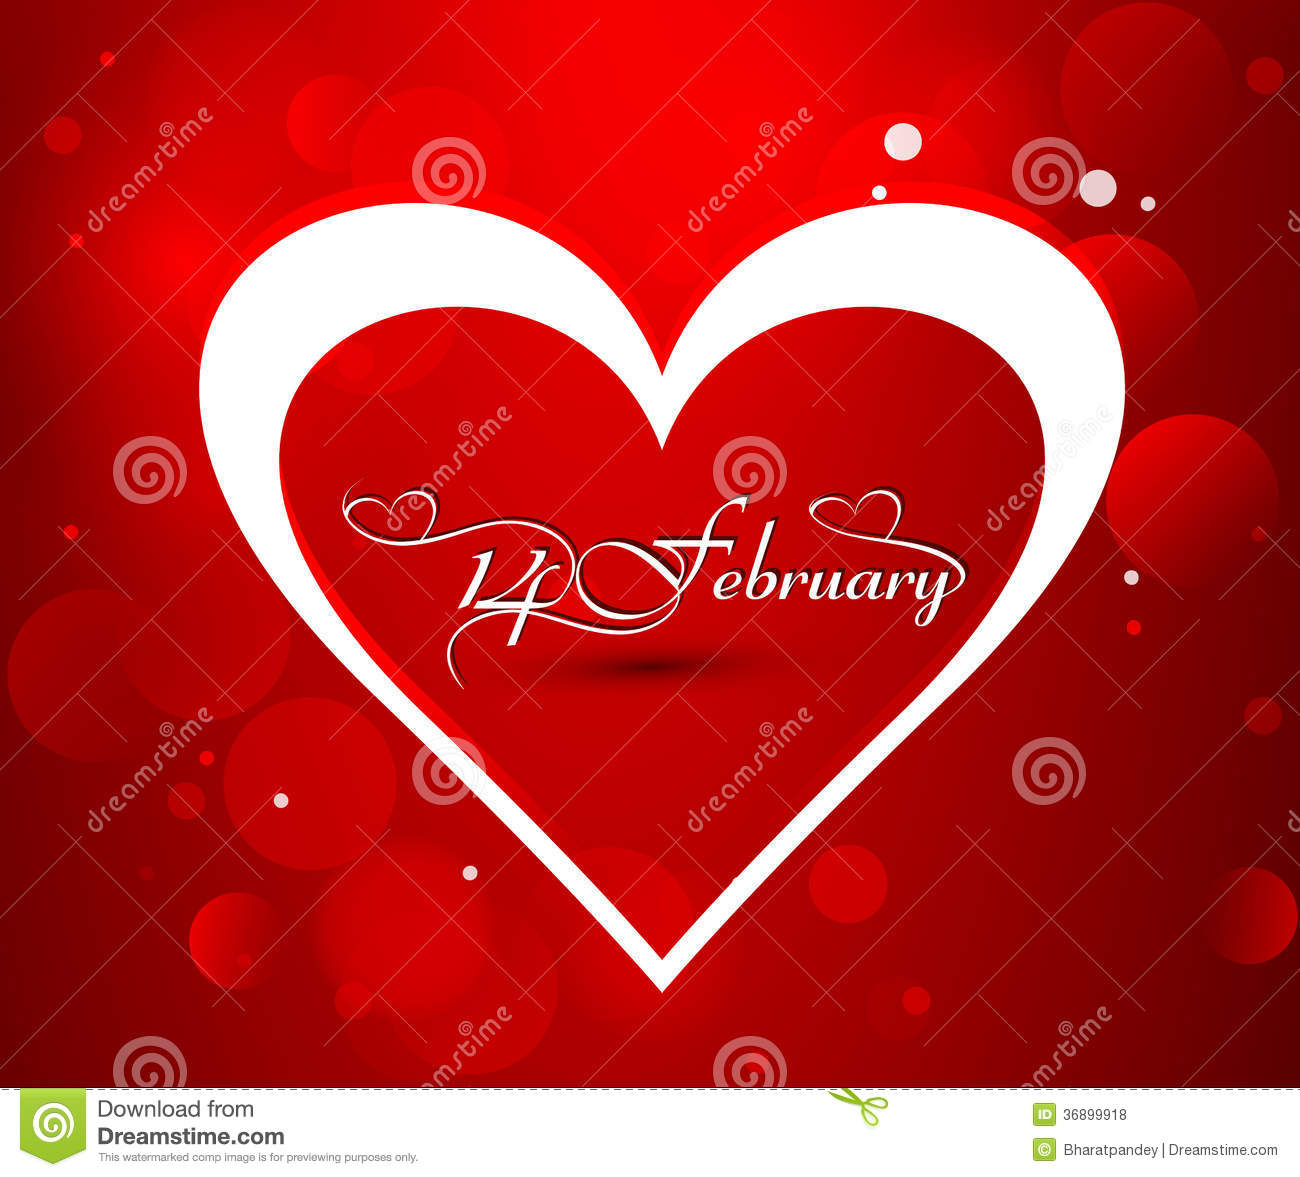 Beautiful Valentines Day Card With Heart 14 February Royalty Free – Beautiful Valentine Day Cards